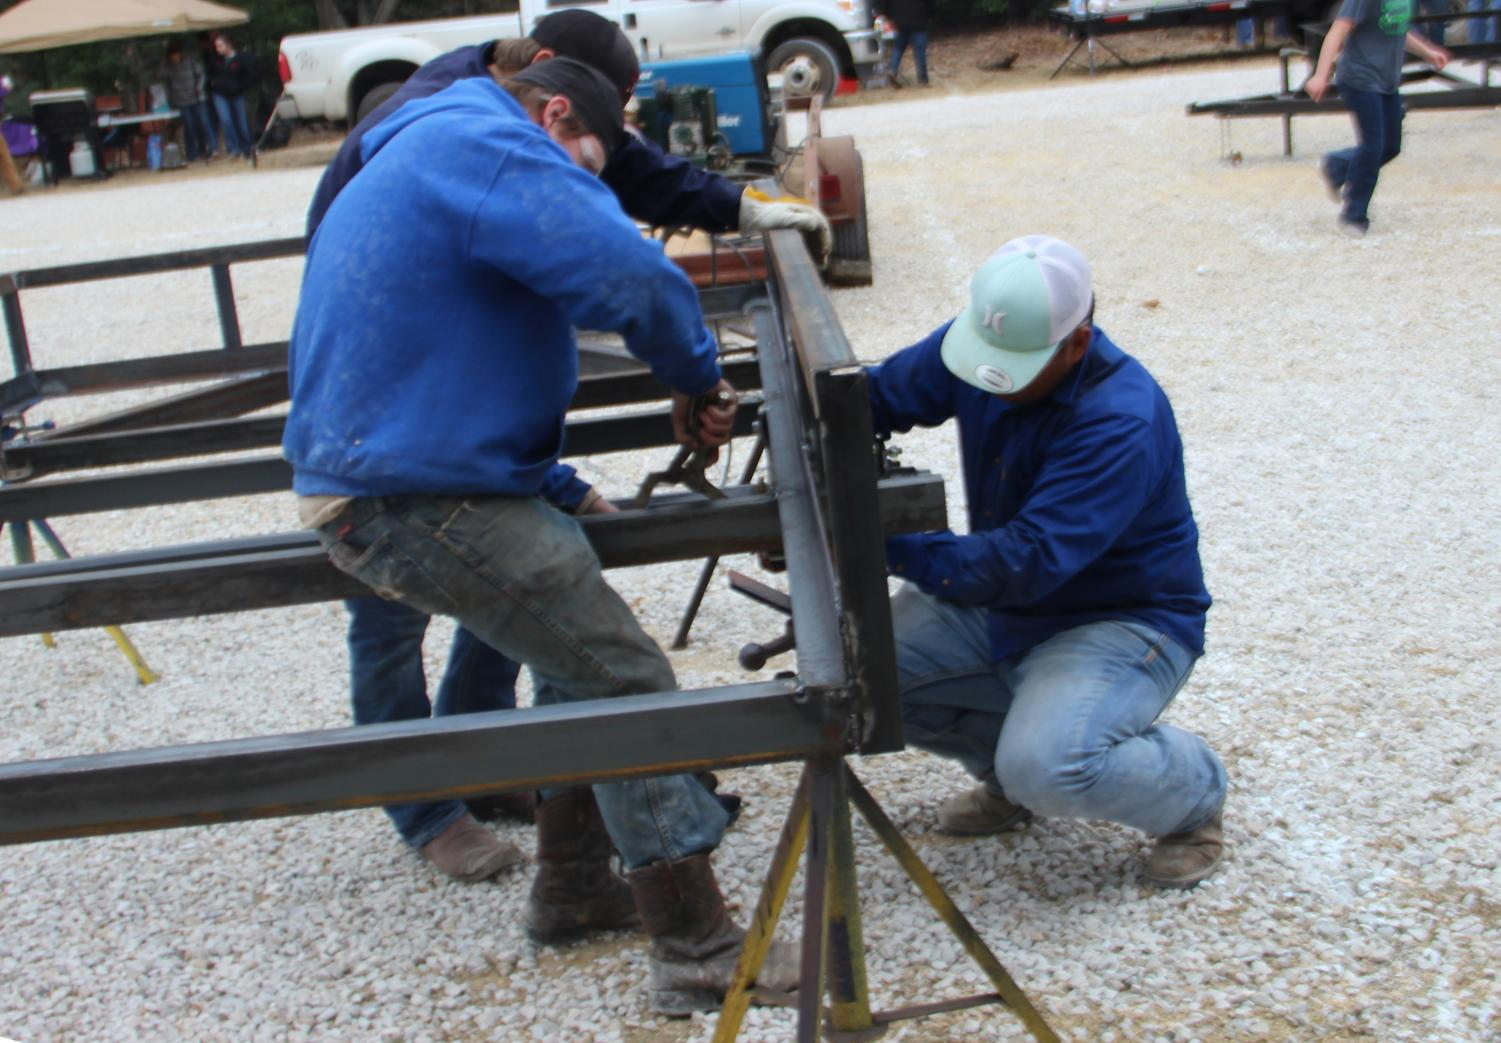 Three Lindale students work on their trailer at the trailer build on December 6. Several Lindale teams competed in either the trailer build off or the cooking competition, along with teams from different schools around the area.